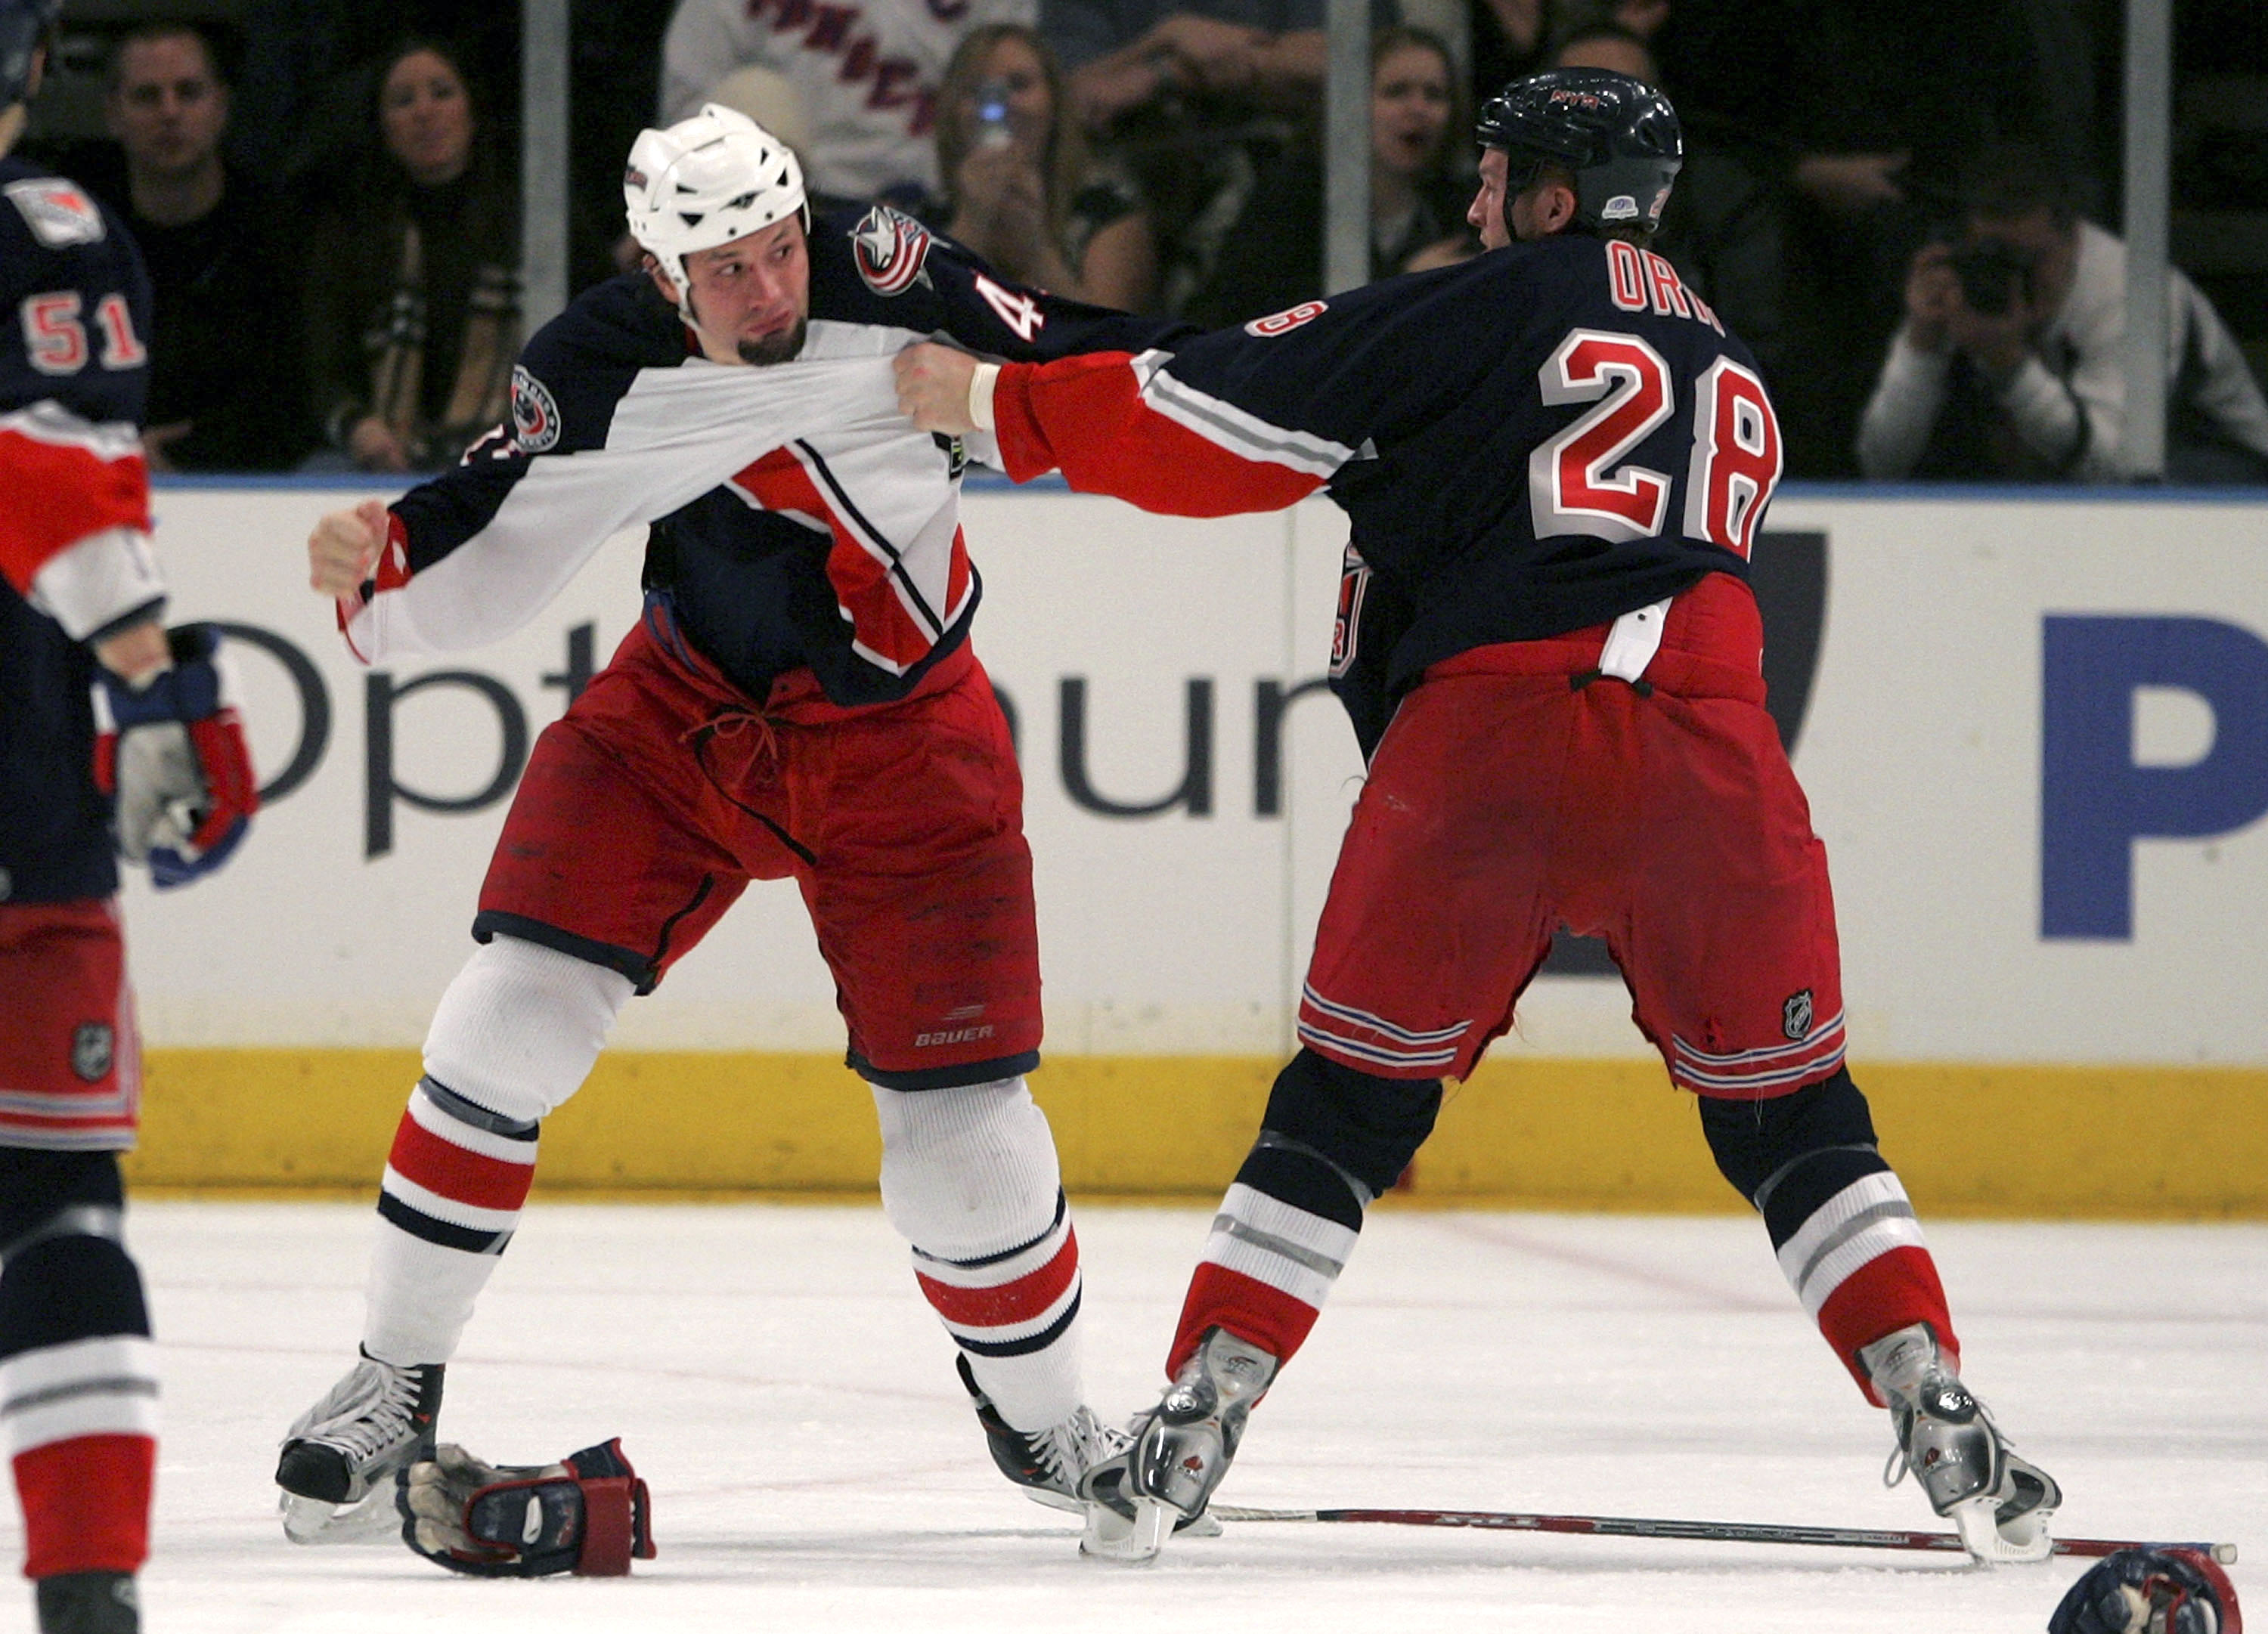 NEW YORK - FEBRUARY 24:  Jody Shelley #45 of the Columbus Blue Jackets and Colton Orr #28 of the New York Rangers exchange blows on February 24, 2007 at Madison Square Garden in New York. The Blue Jackets defeated the Rangers 3-2. (Photo by Bruce Bennett/